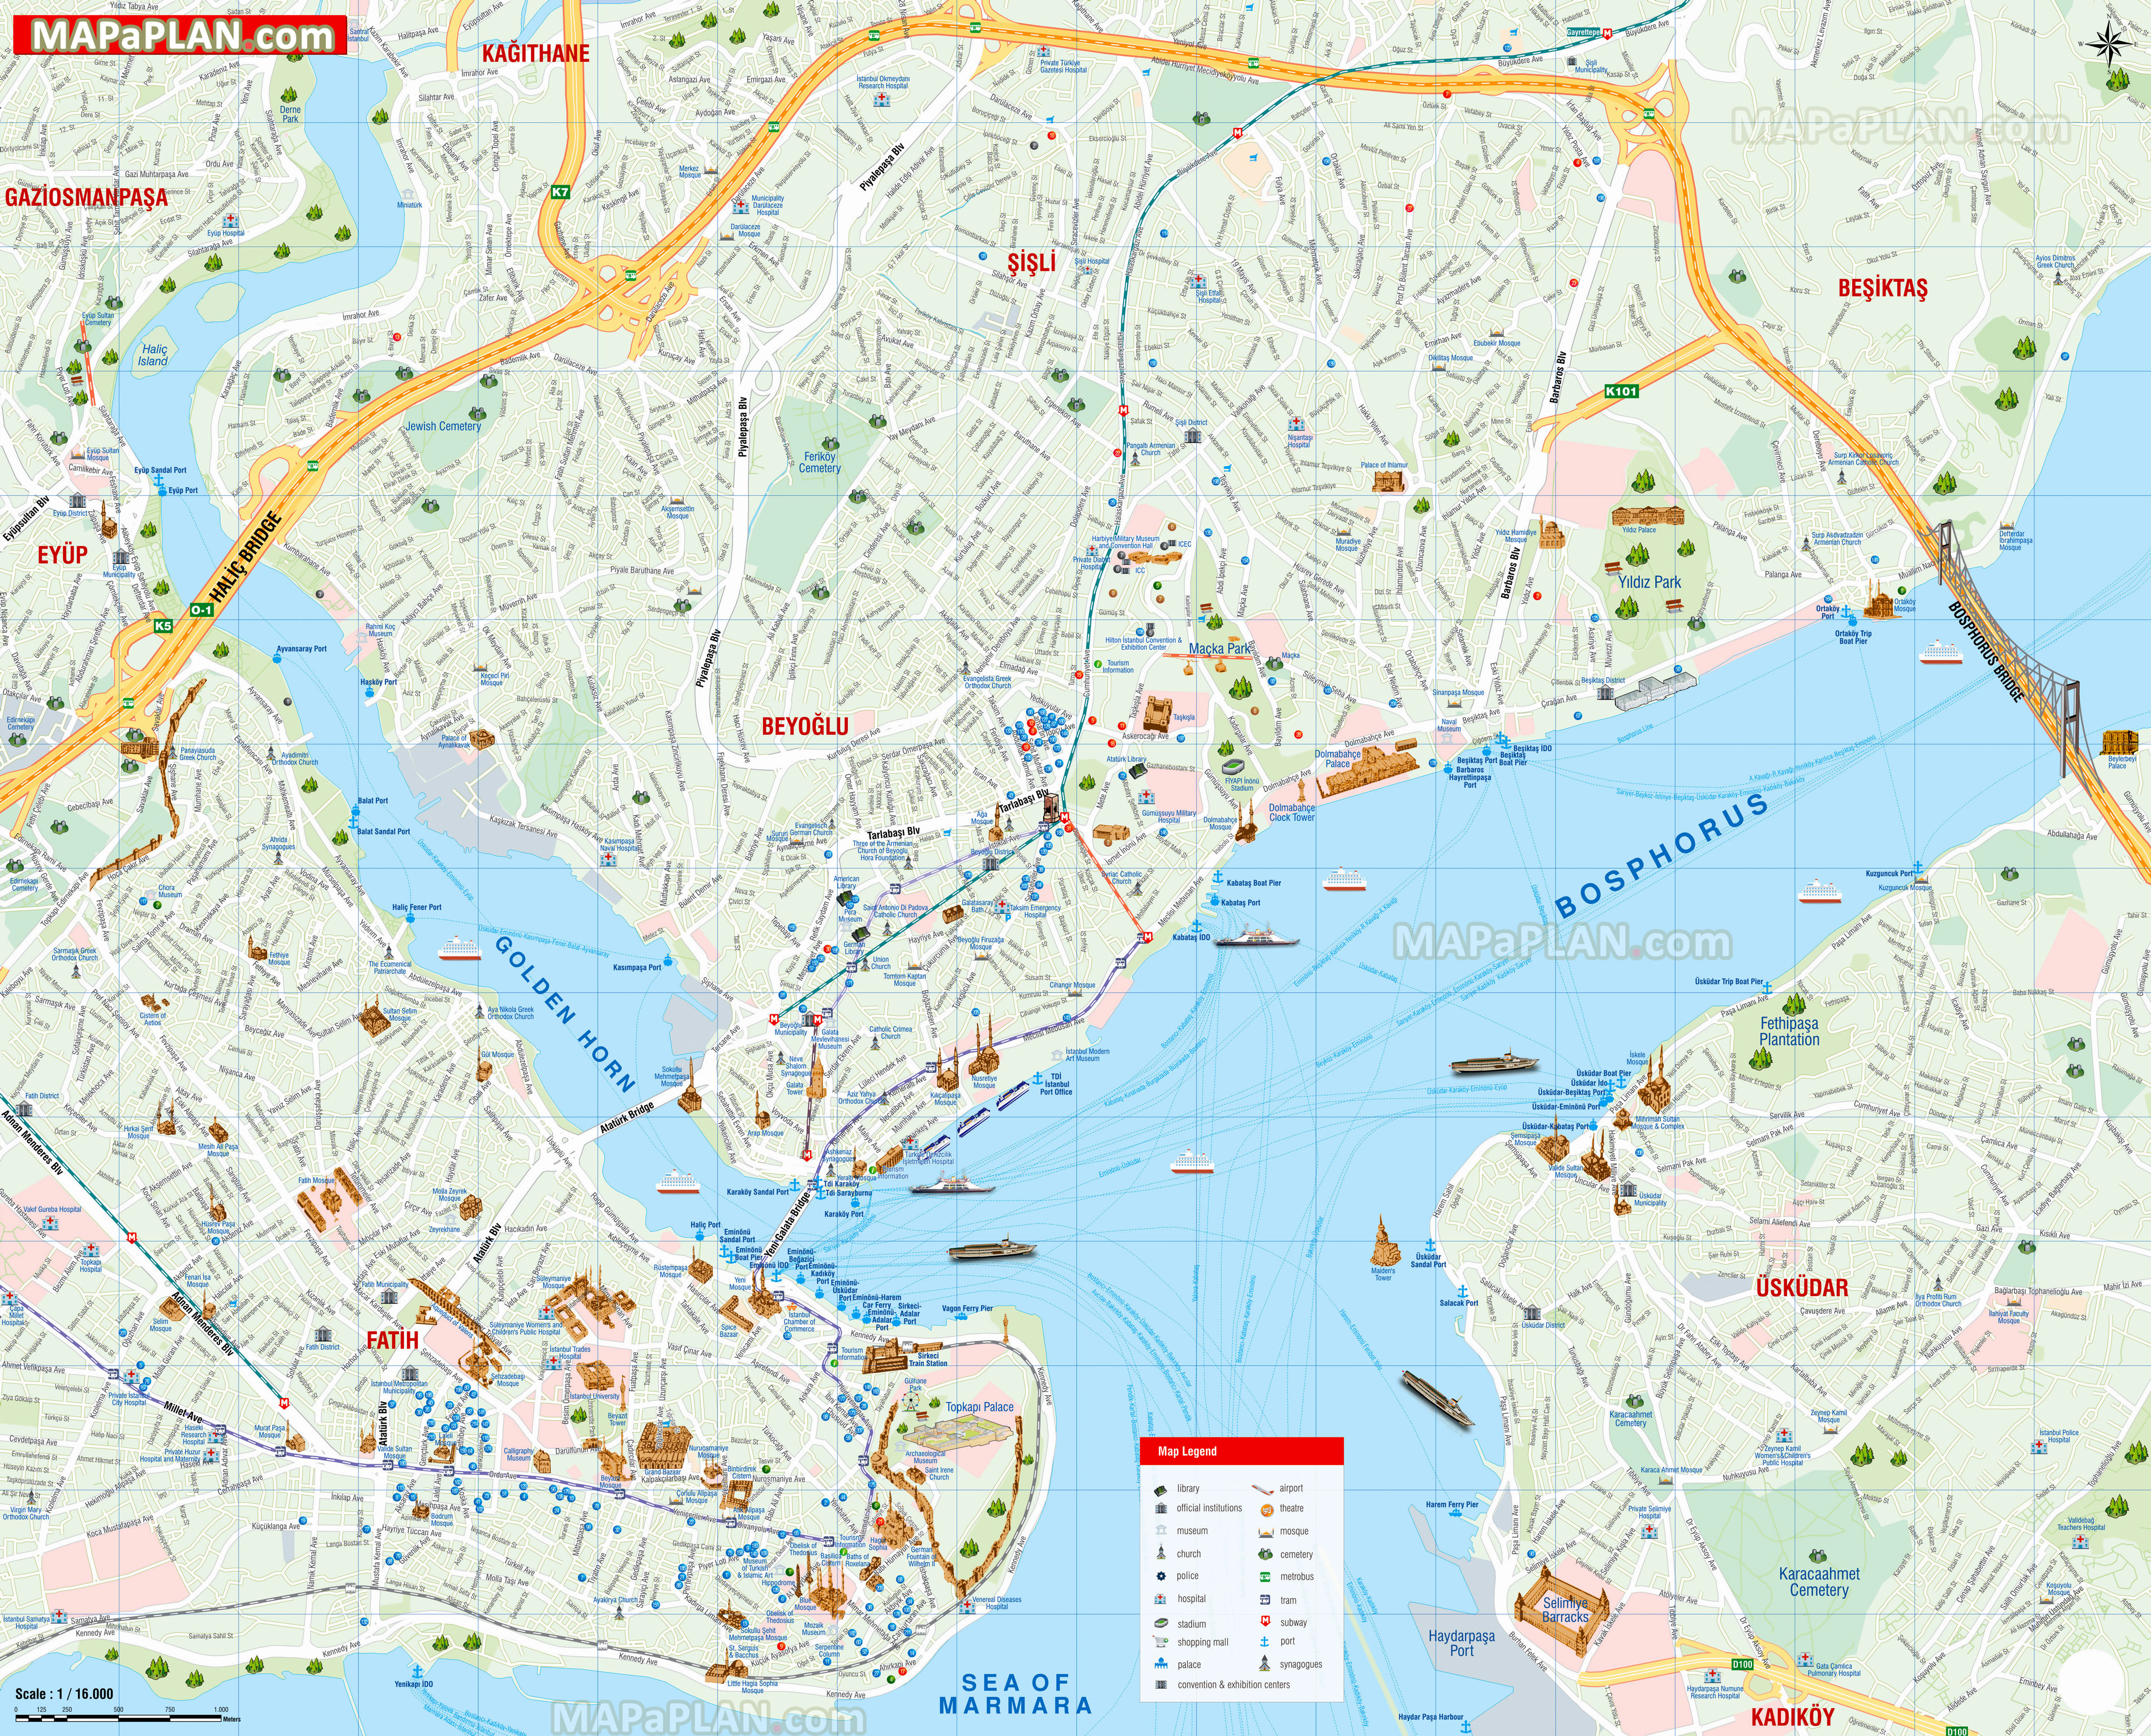 istambul mapa Istanbul maps   Top tourist attractions   Free, printable city  istambul mapa